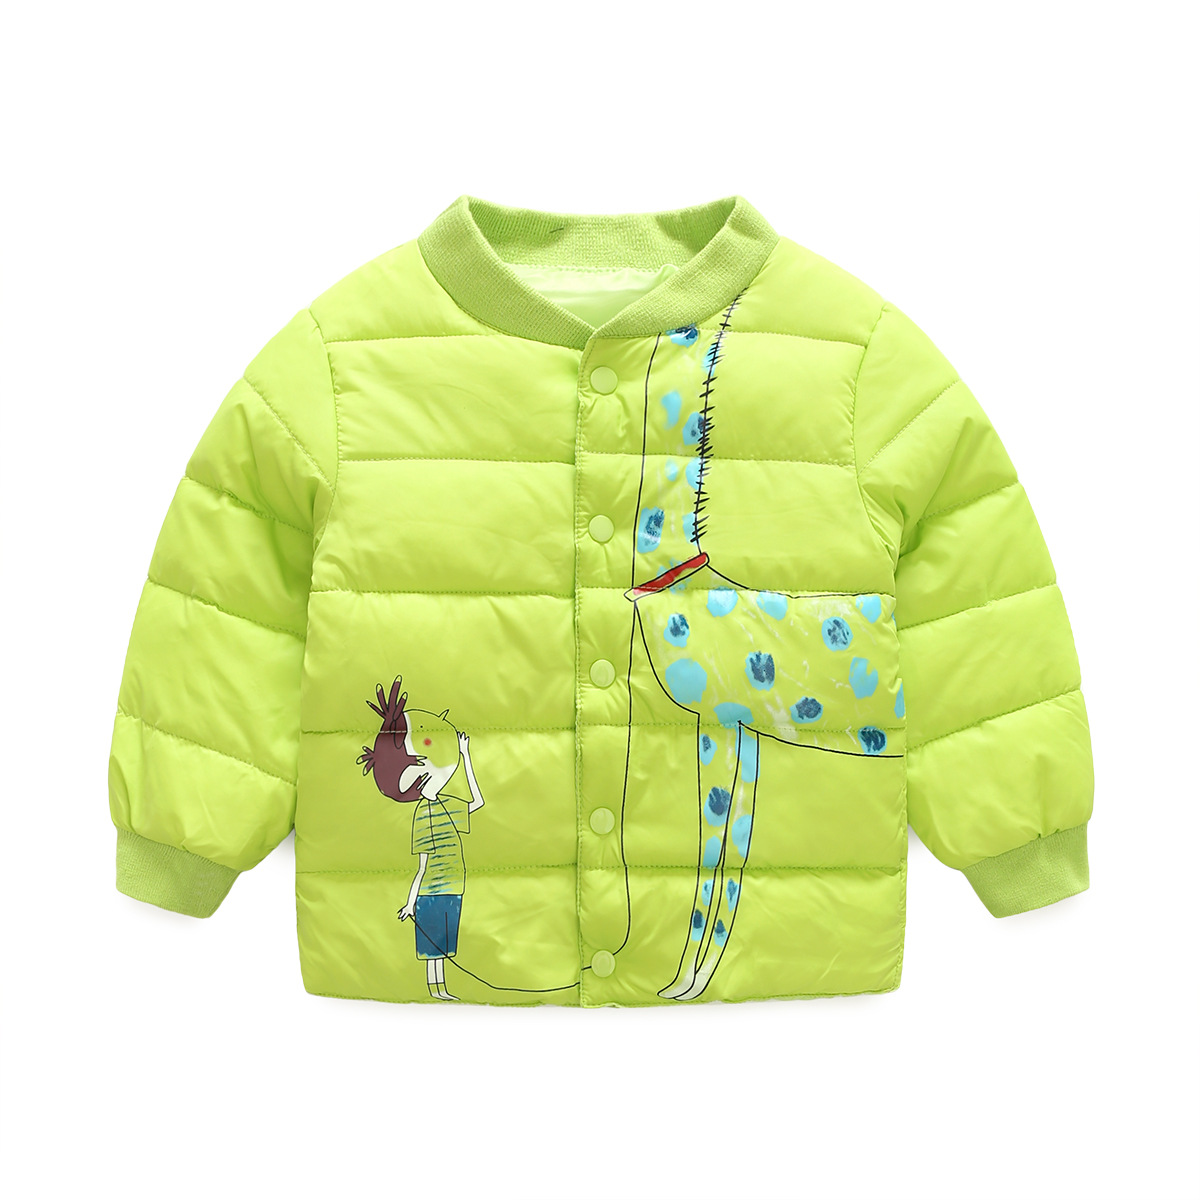 Kids Outerwear&Coats Winter Coat Kids Clothes Children's Clothing Girls Winter Jackets Boys Cartoon Fashion Warm Coat